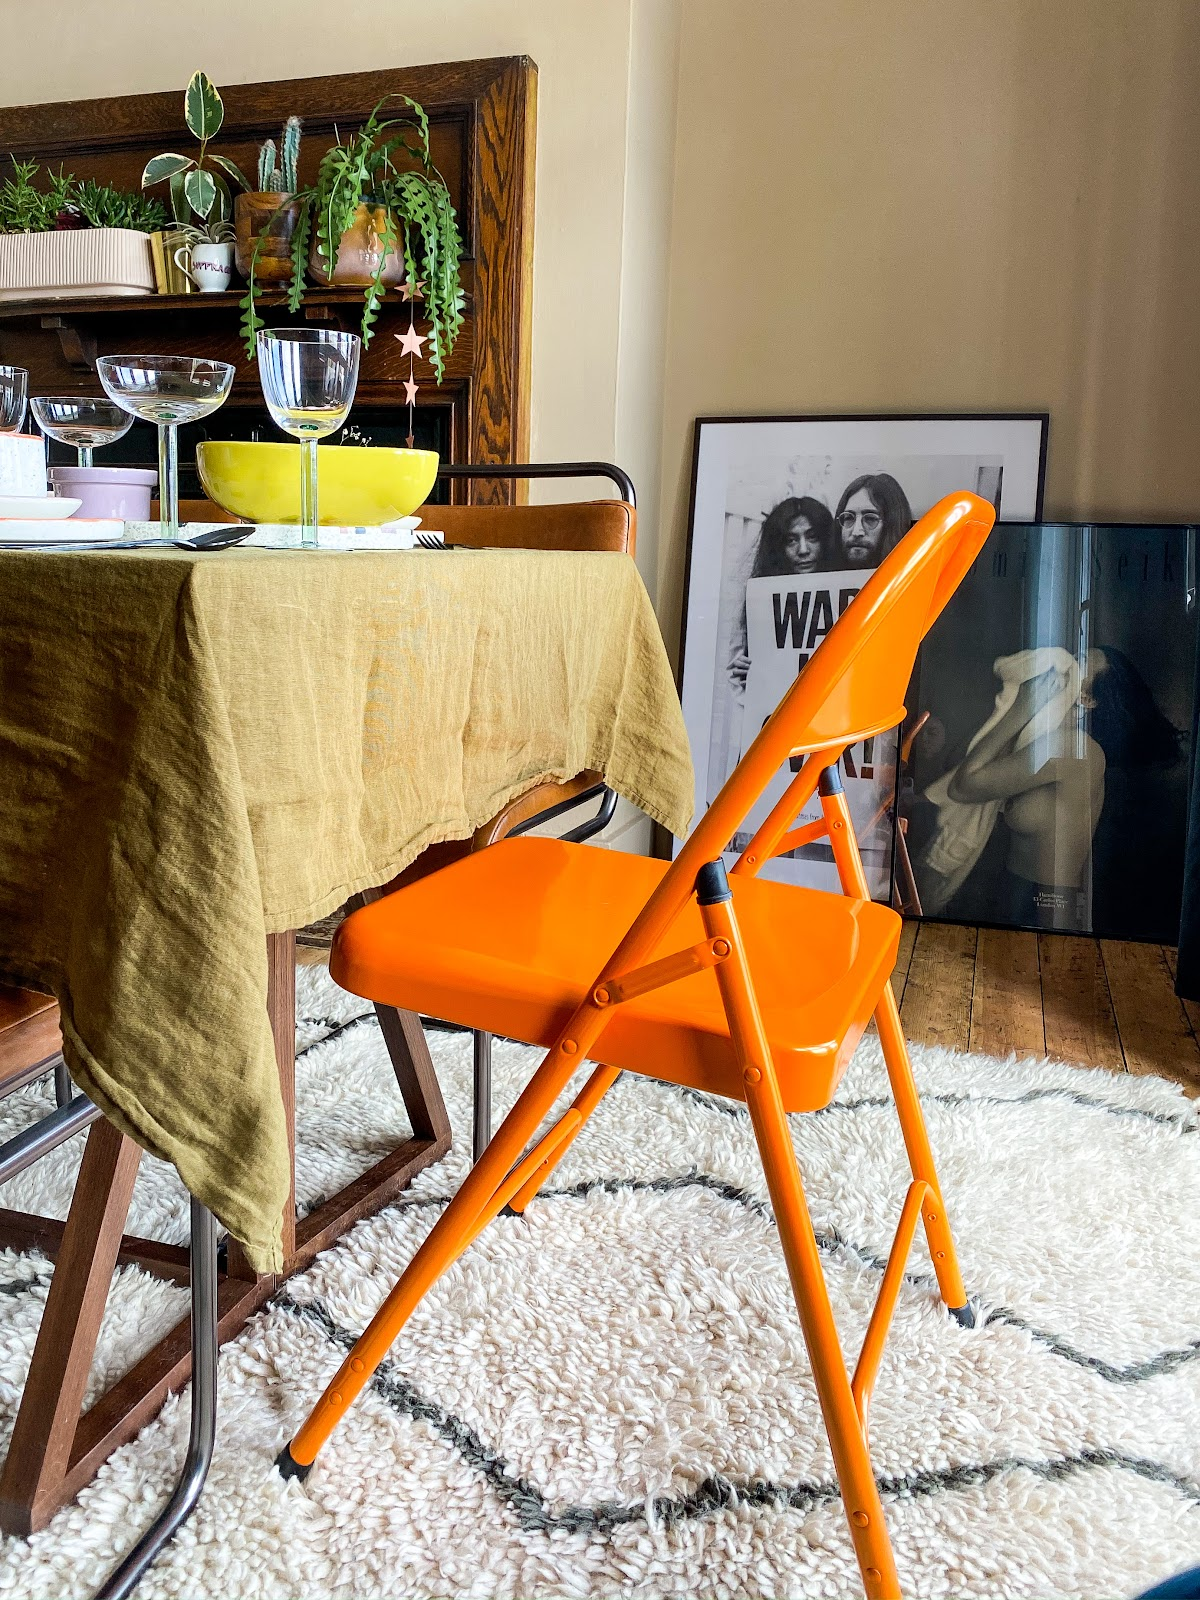 orange folding metal chair at dining table